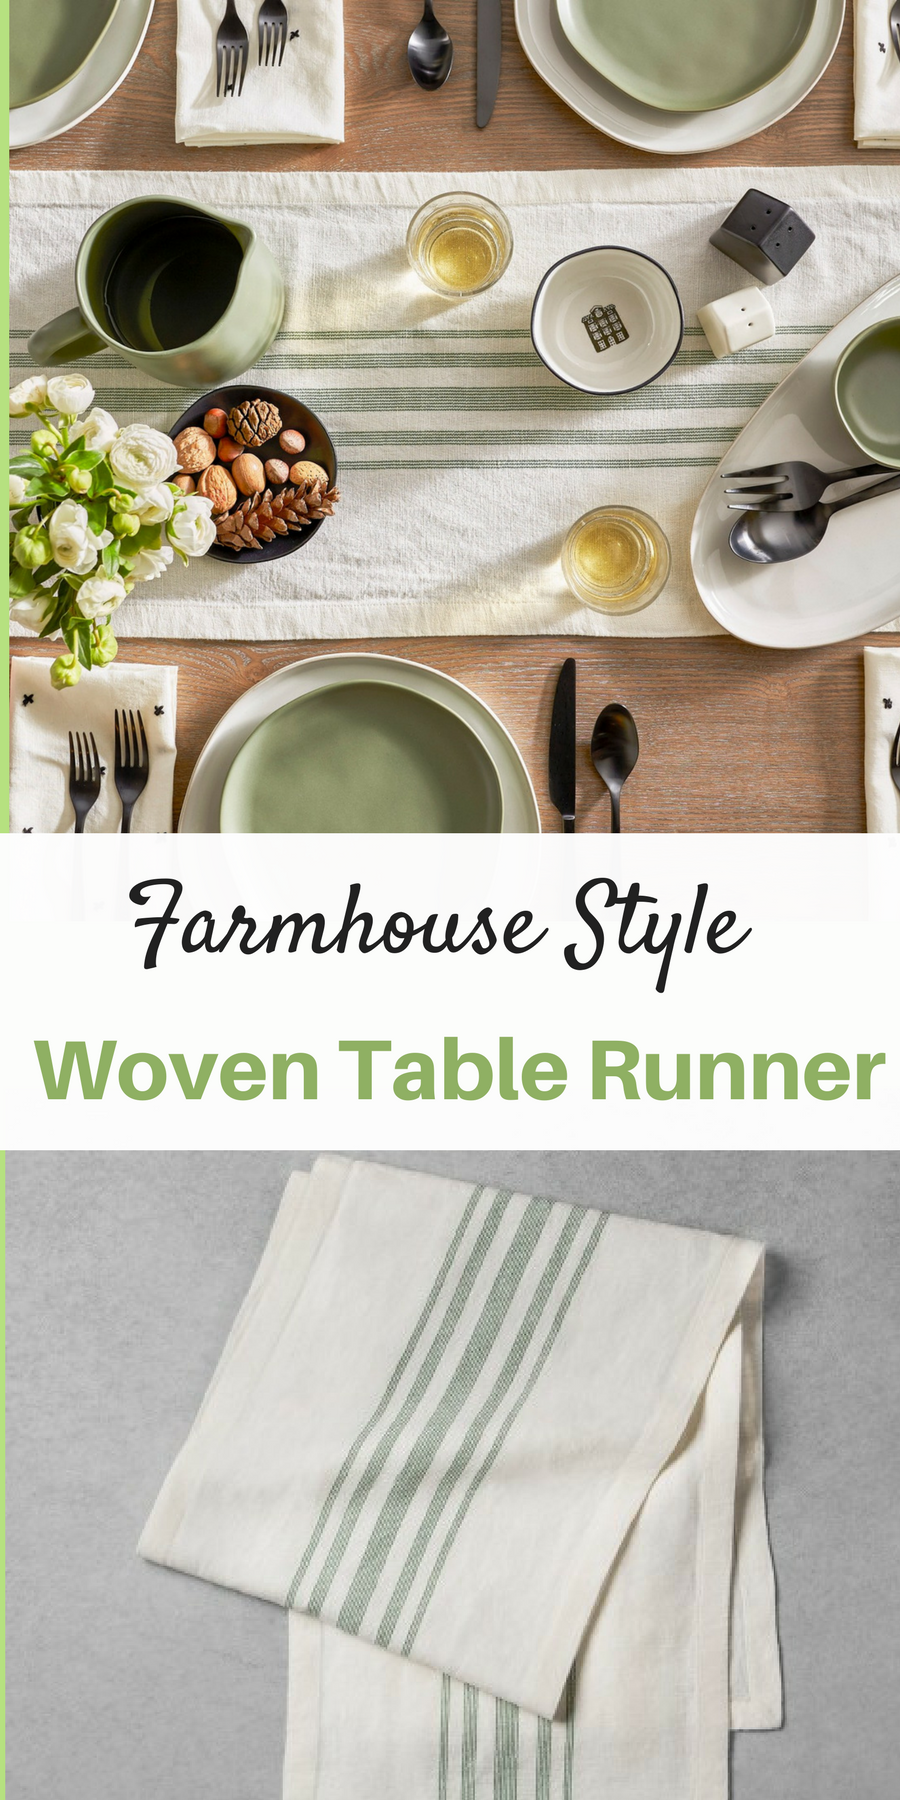 Striped Woven Table Runner Green And White Farmhouse